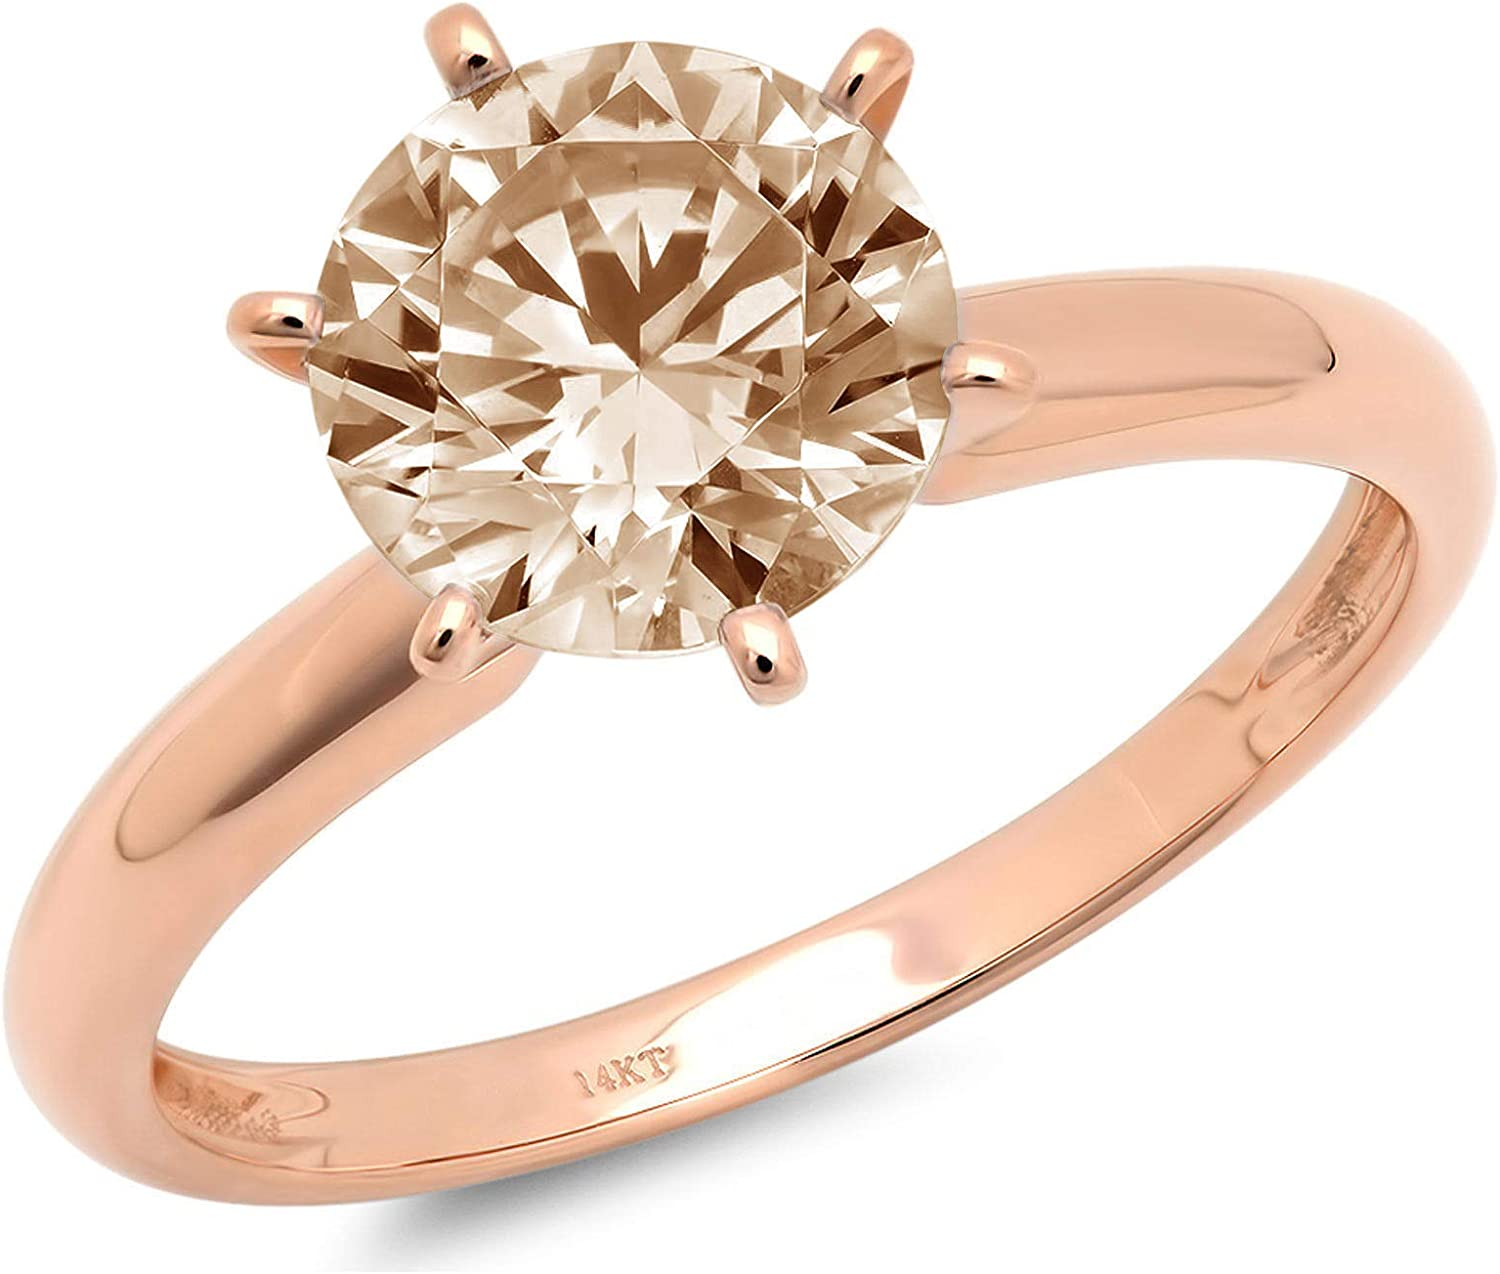 0.45ct Brilliant Round Cut Solitaire Brown Champagne Simulated Diamond CZ Ideal VVS1 D 6-Prong Classic Designer Statement Ring in Solid Real 14k rose gold for Women